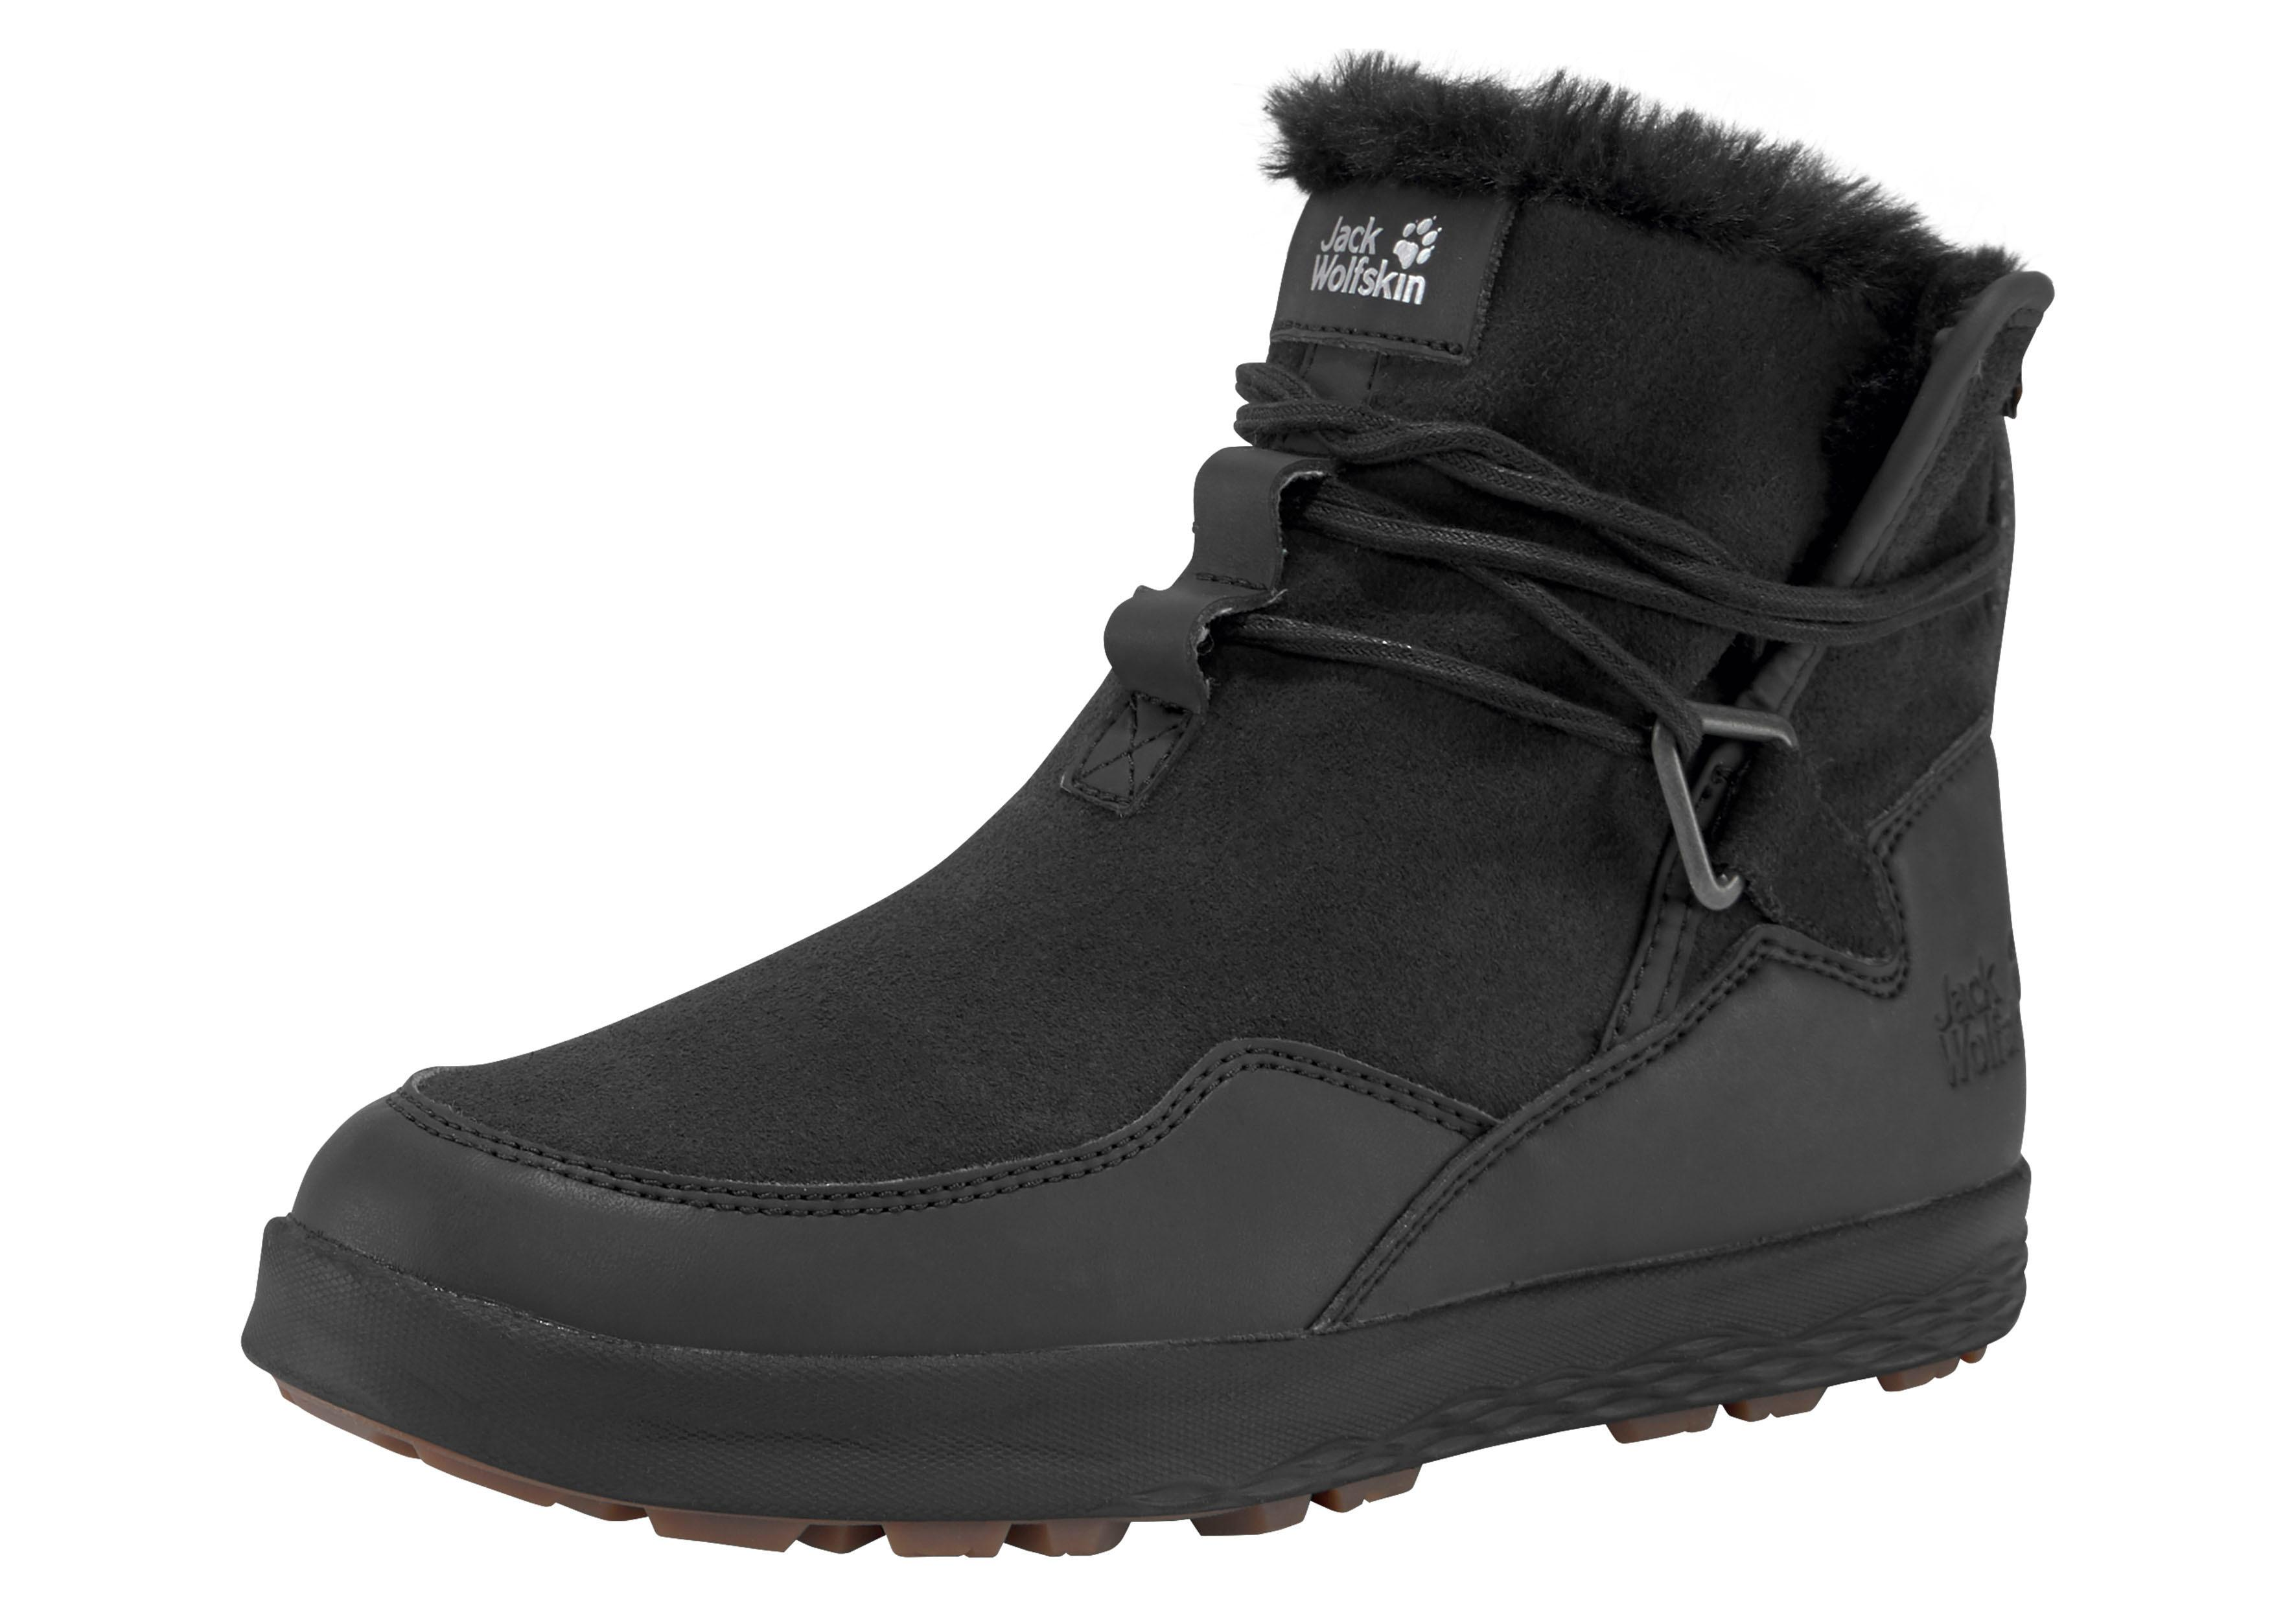 Jack Wolfskin Winterboots Auckland winterized Texapore Boot W